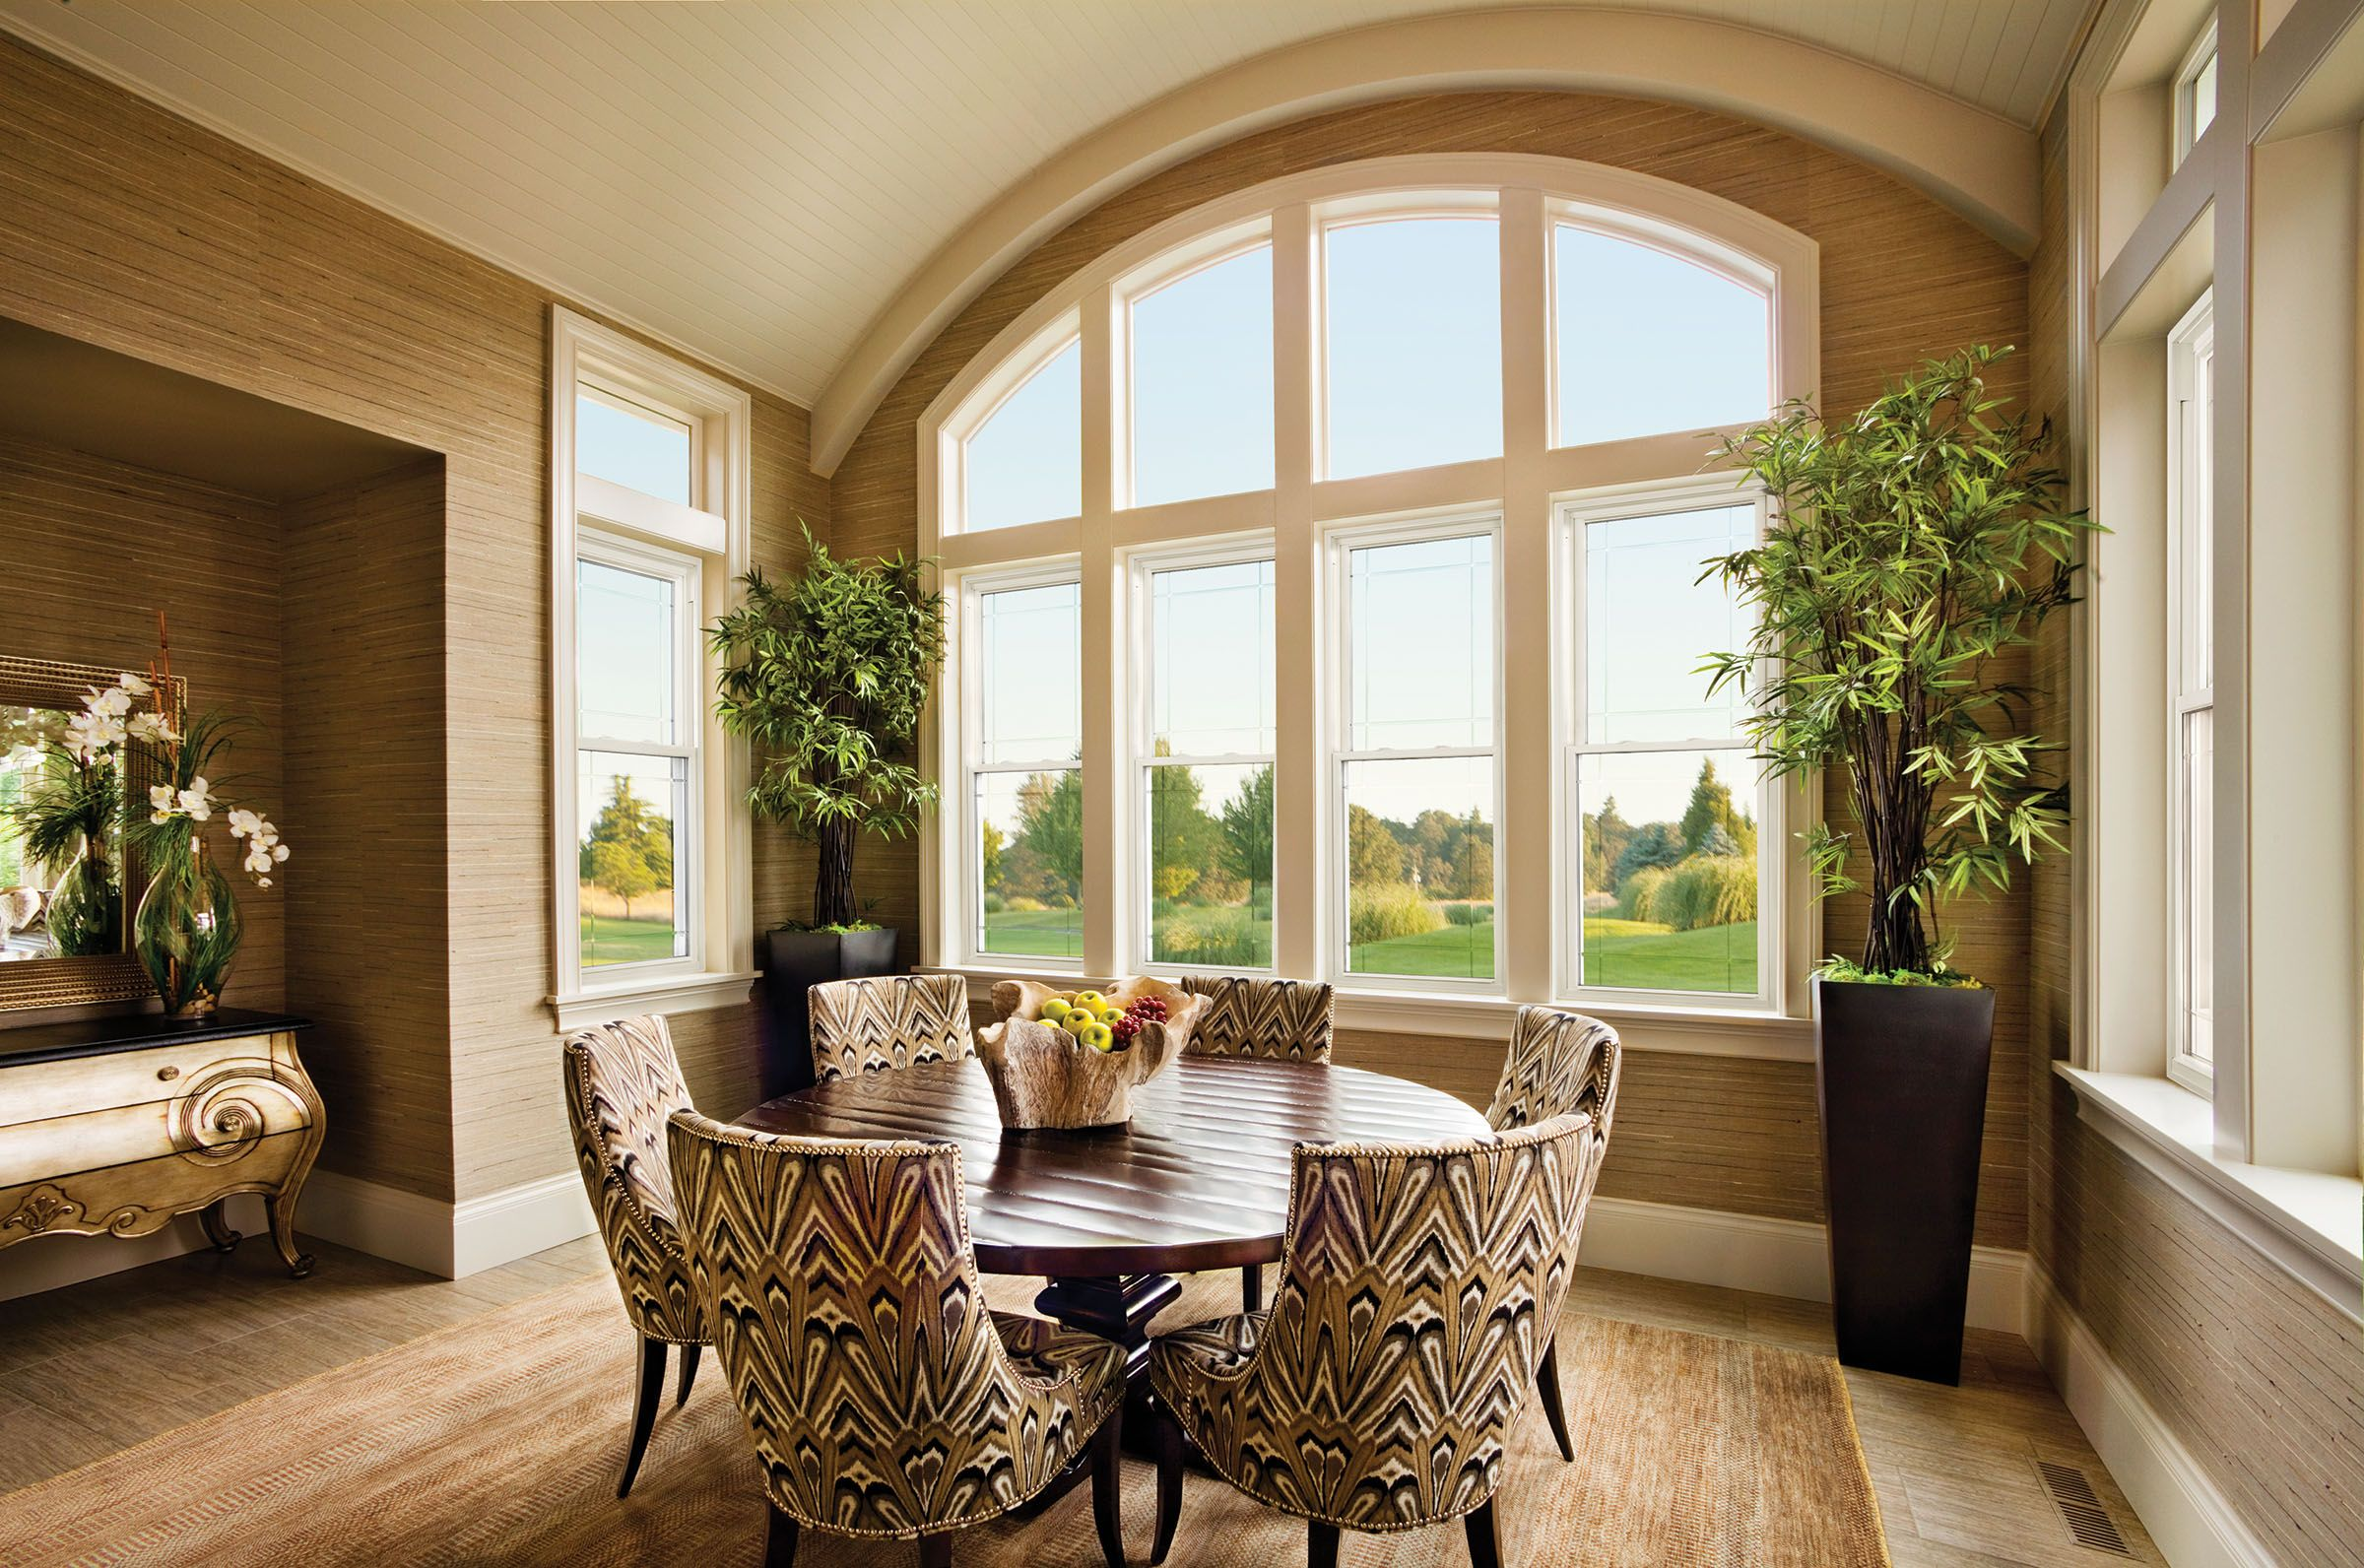 Best Of Window Shapes and Designs